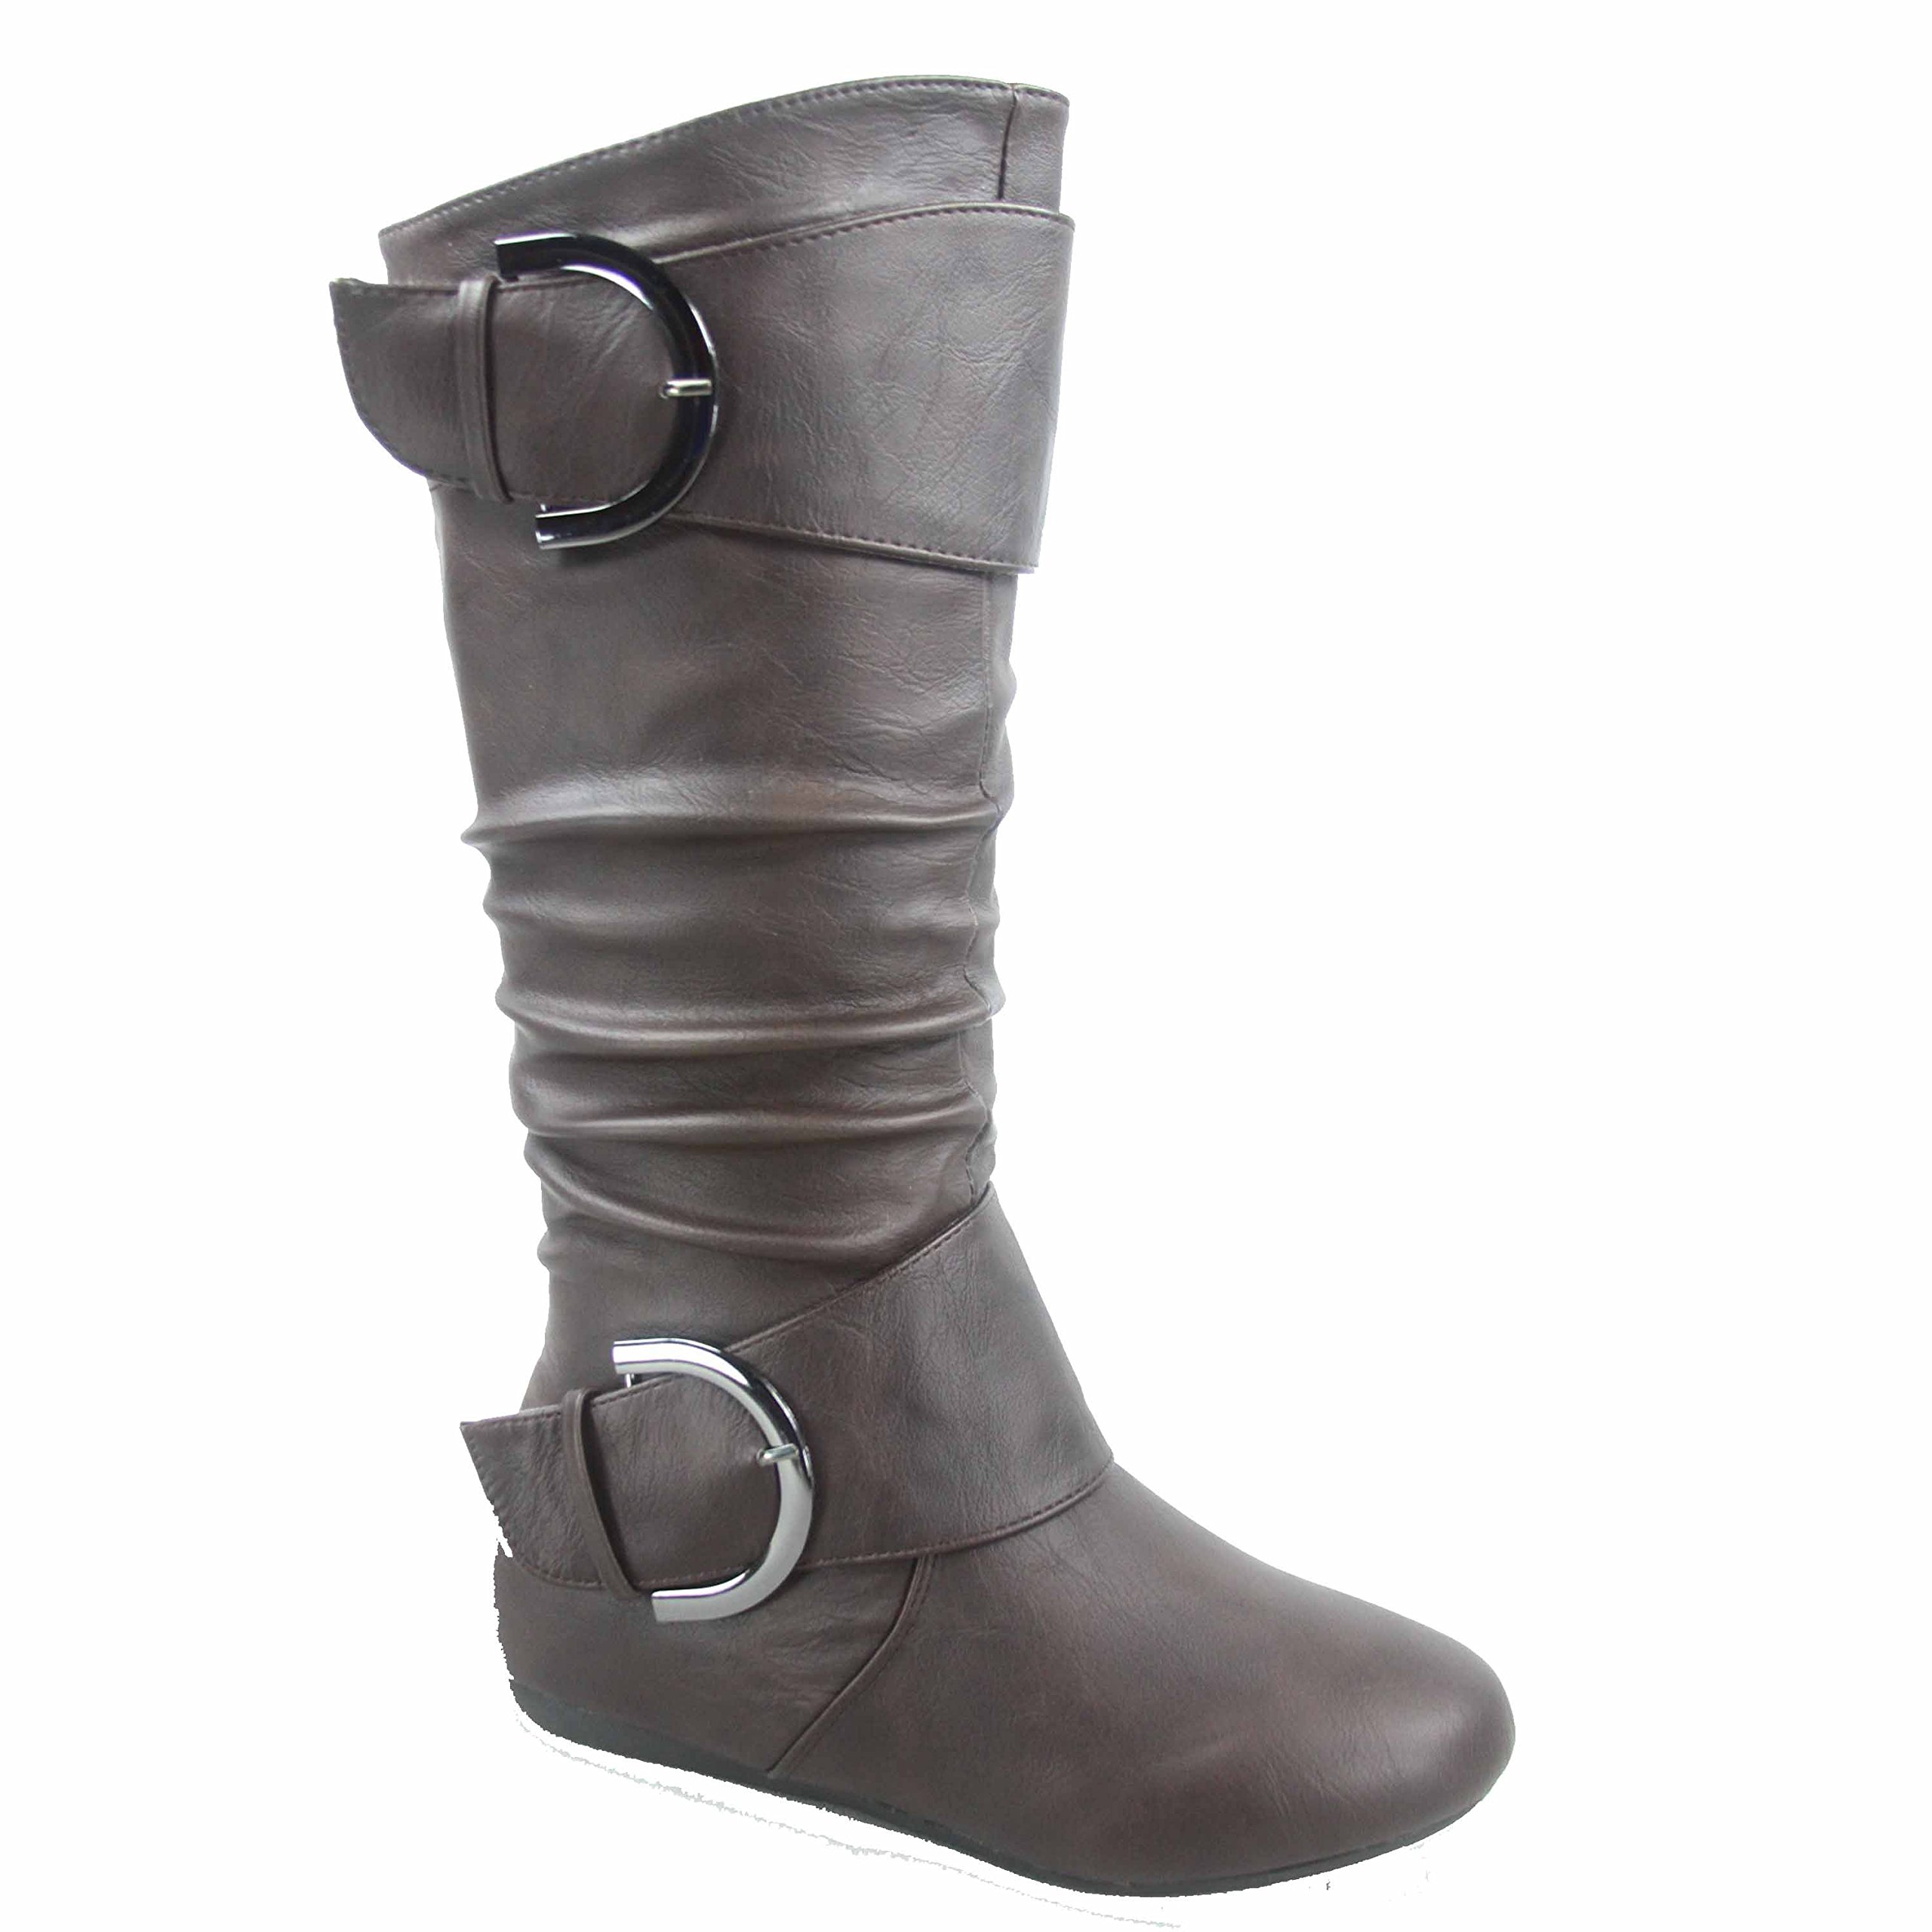 Top Moda Bank-85 Women's Fashion Mid Calf Round Toe Slouch Comfort Casual Flat Boot (6.5, Brown)